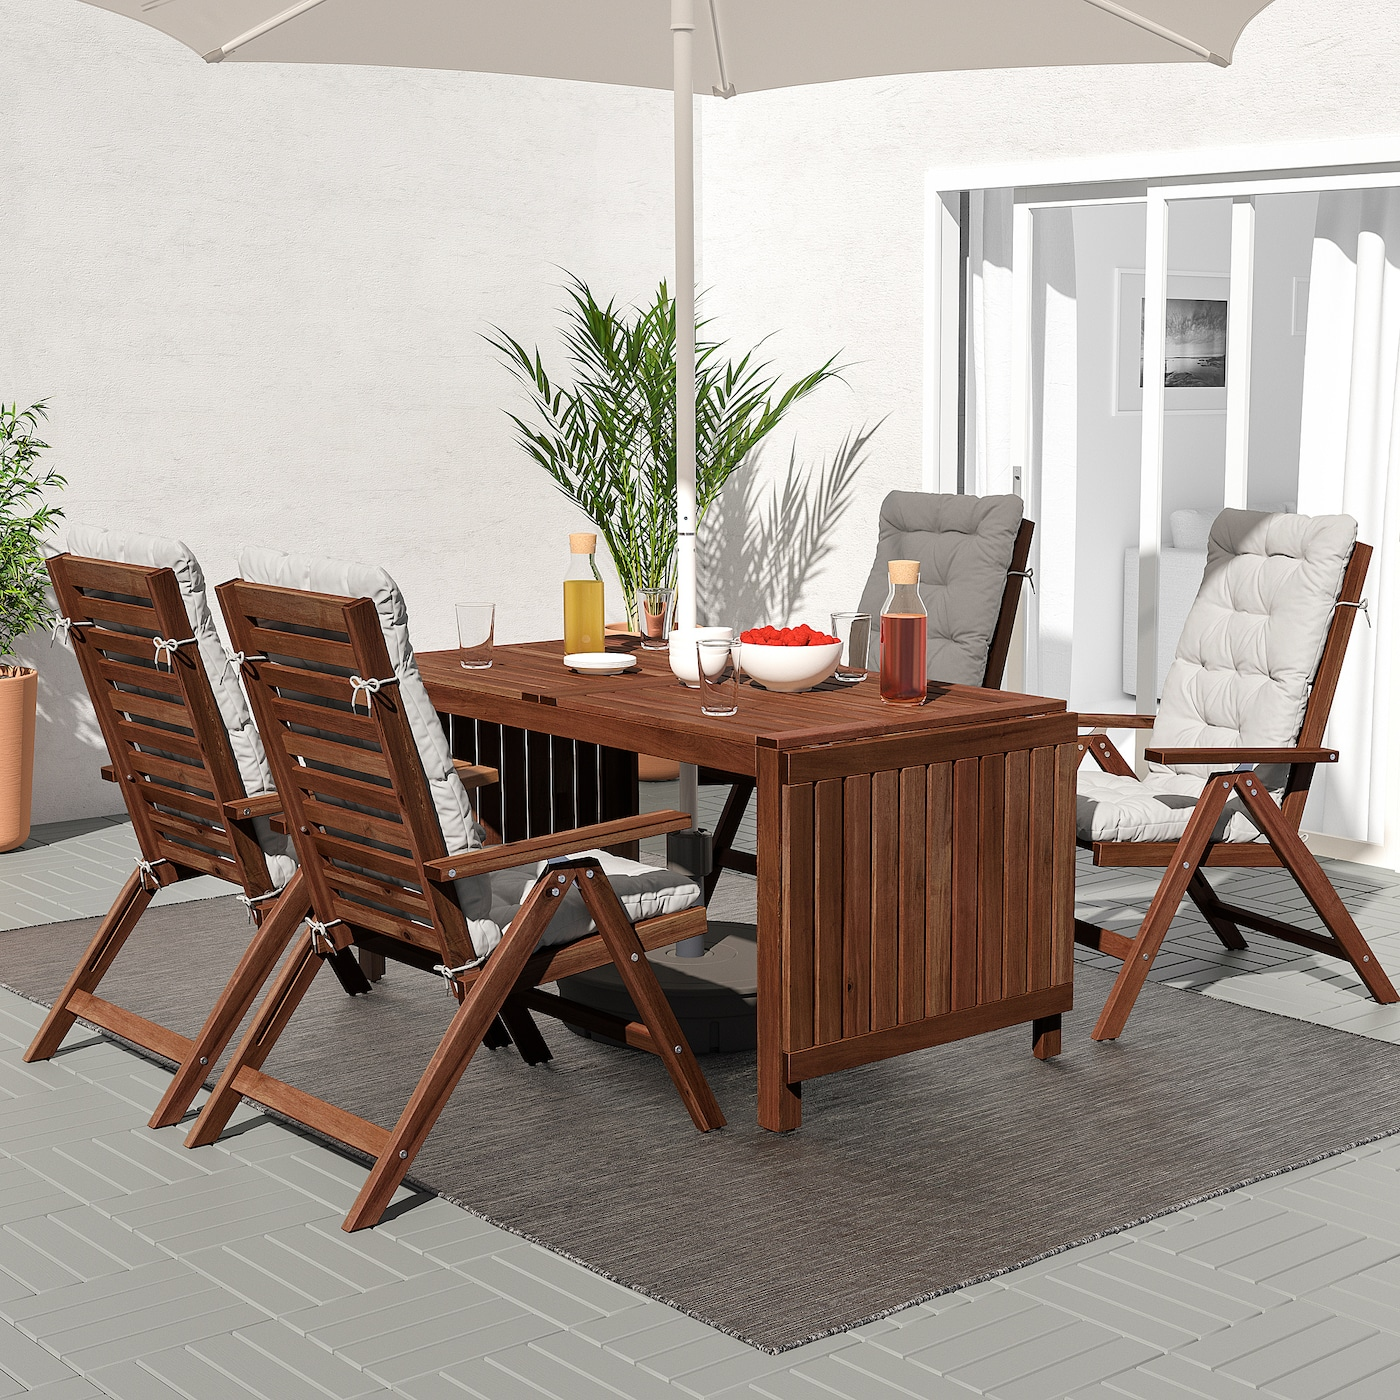 Cozy Living Room Paint Colors, Applaro Drop Leaf Table Outdoor Brown Stained Brown Ikea